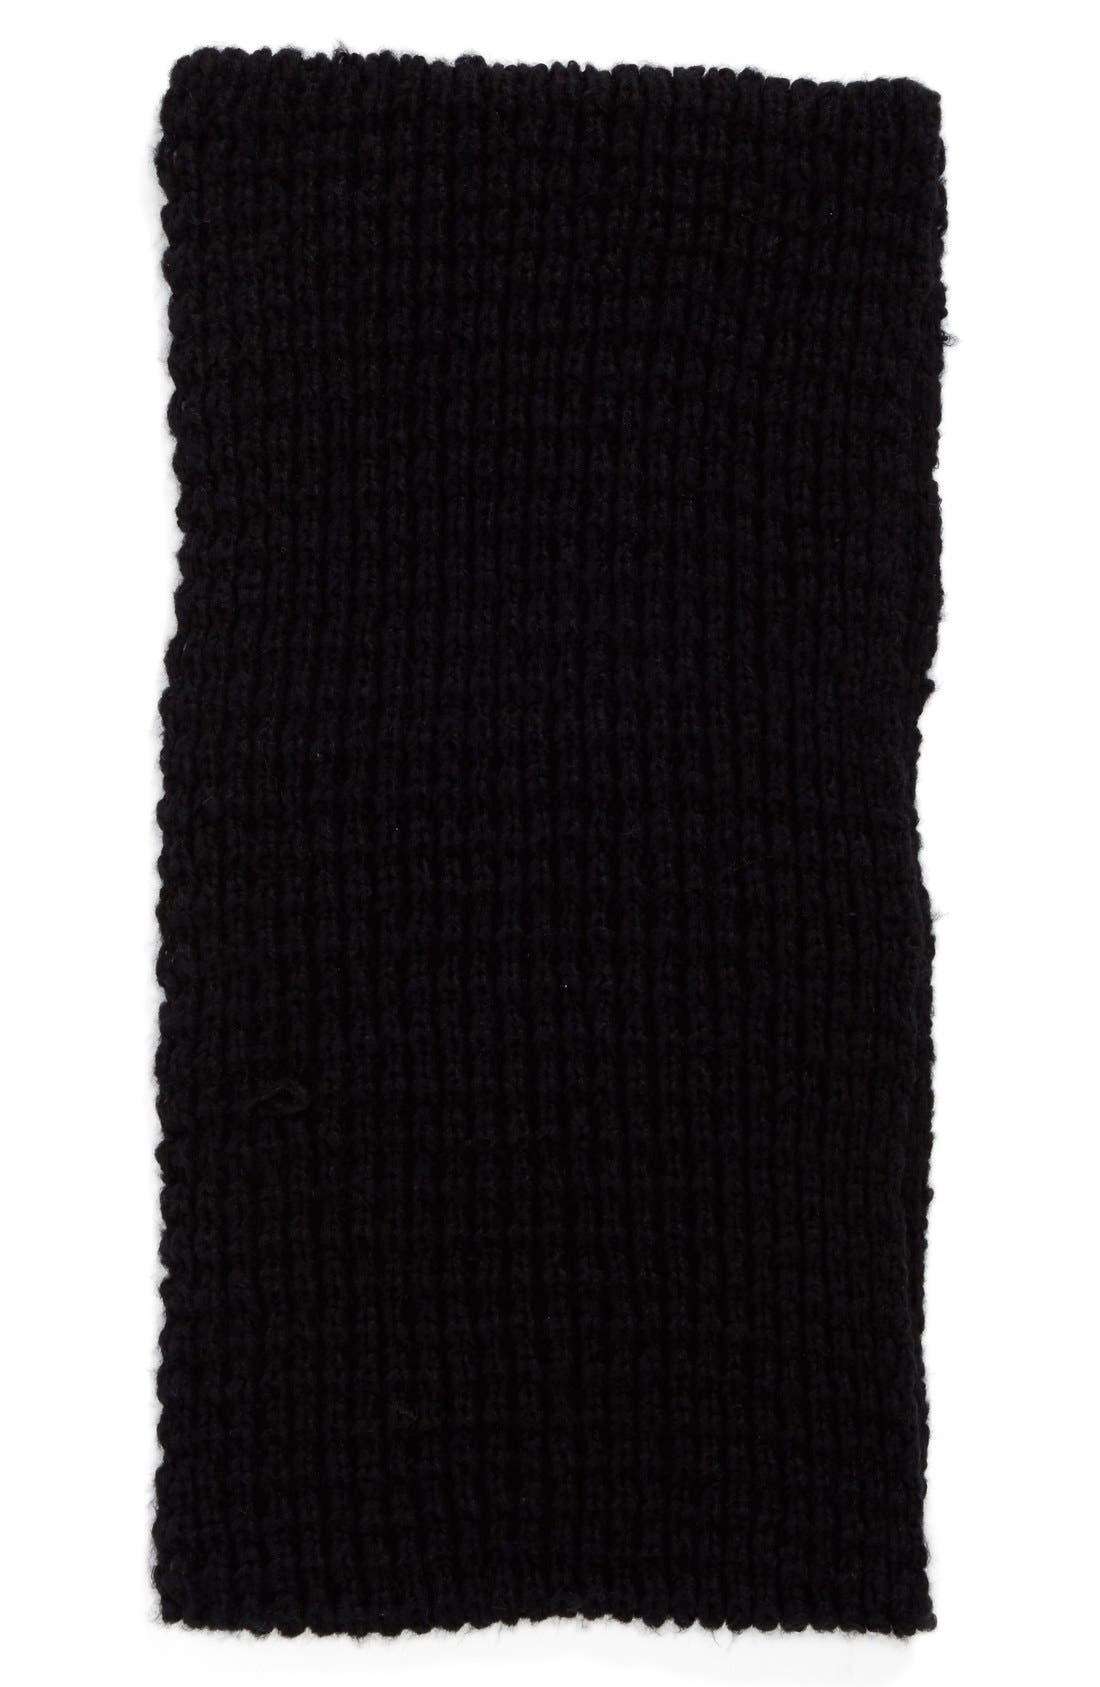 HALOGEN<SUP>®</SUP>, Waffle Knit Infinity Scarf, Alternate thumbnail 3, color, 001